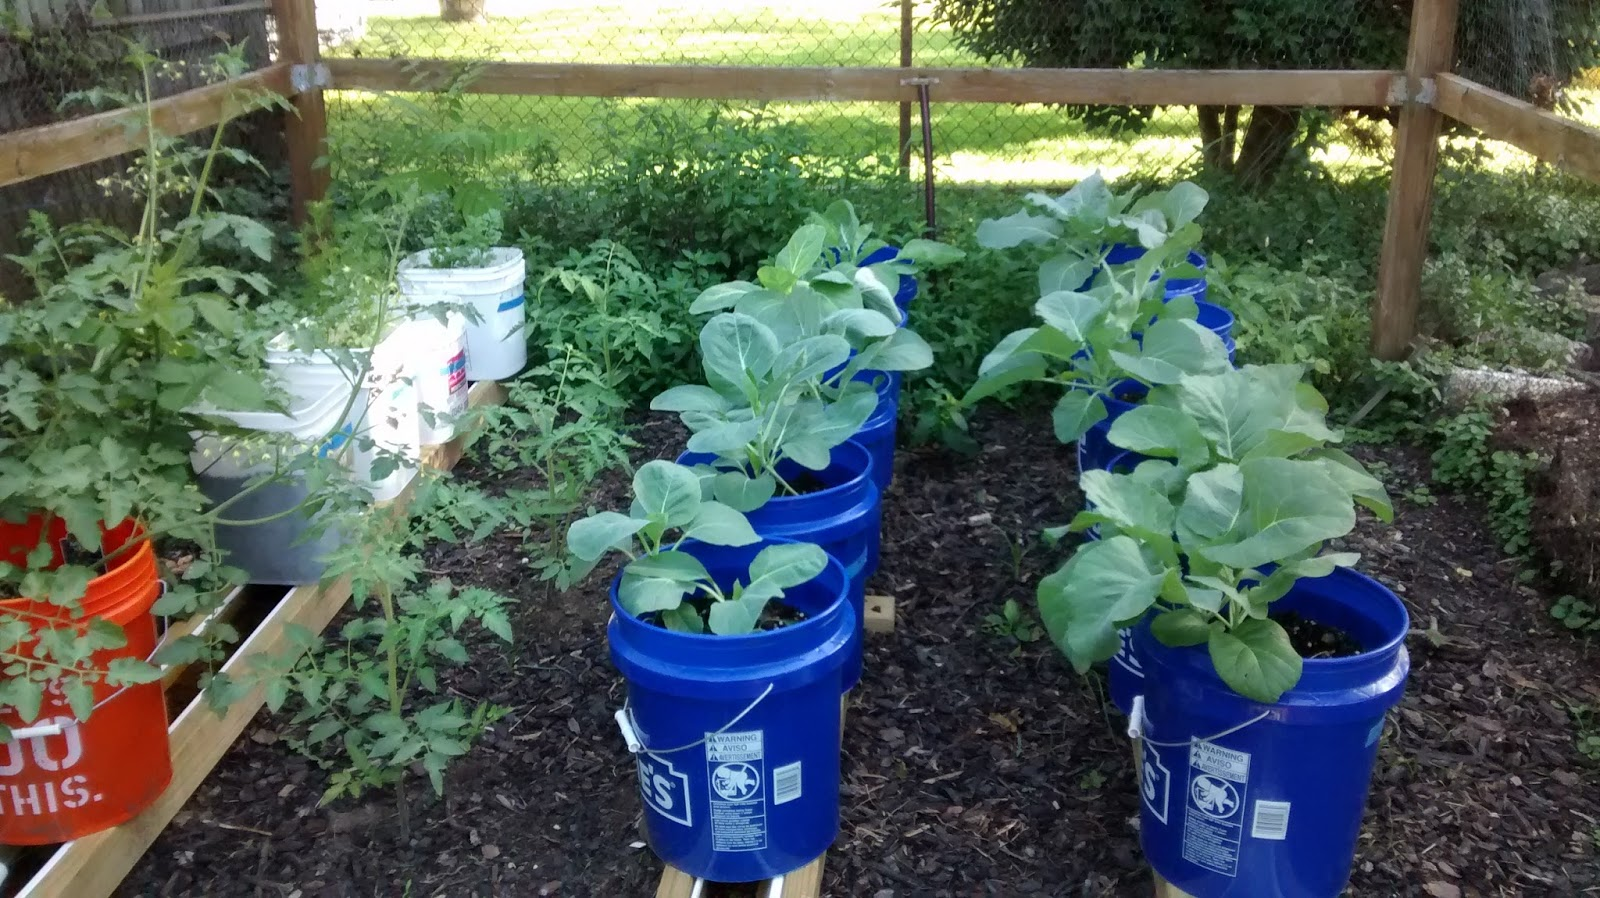 Those Are Collards In The Blue Buckets, My Ketchup And Tomatoes Plant In  The Orange Bucket (which Has Cherry Tomatoes On Top And Potatoes Growing In  The ...